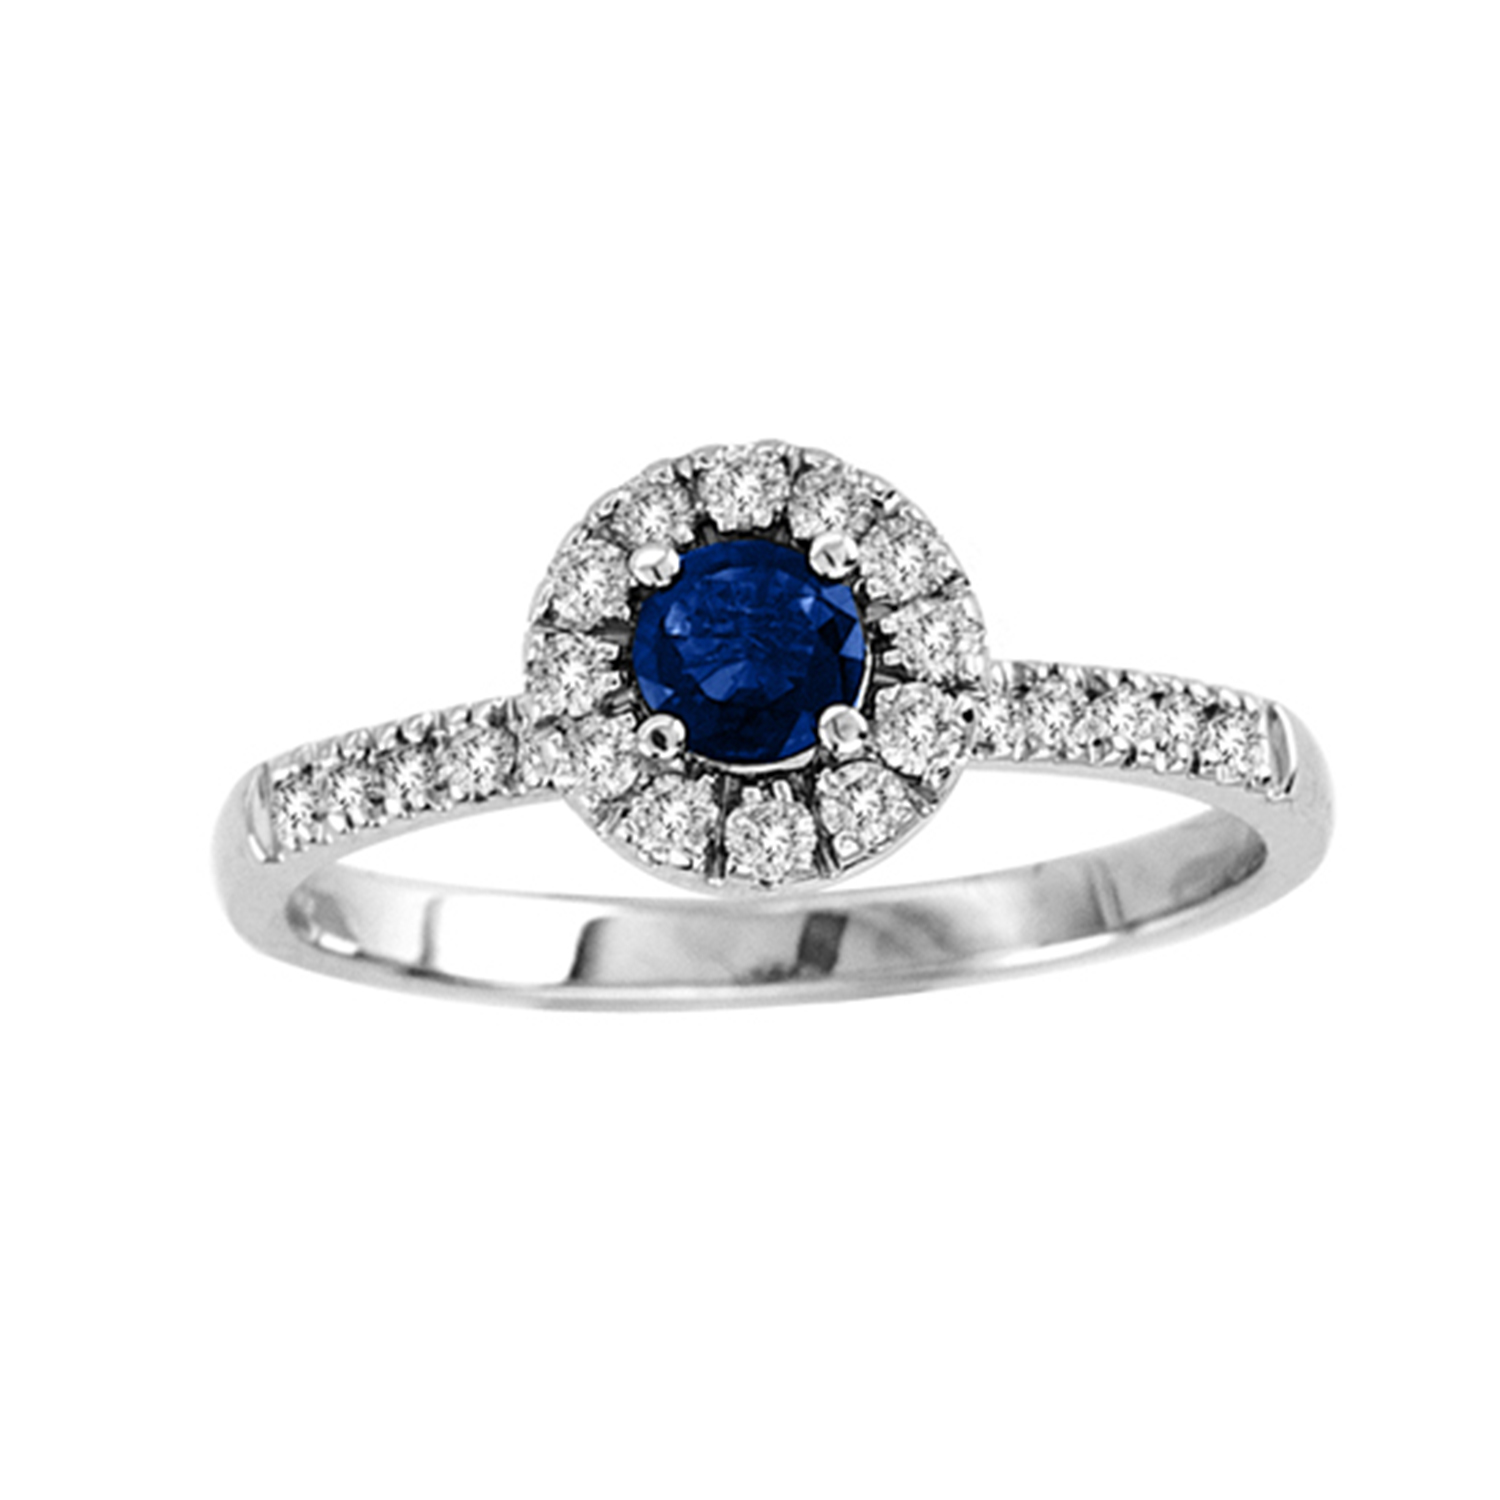 0.60cttw Sapphire and Diamond Halo Ring set in 14k Gold